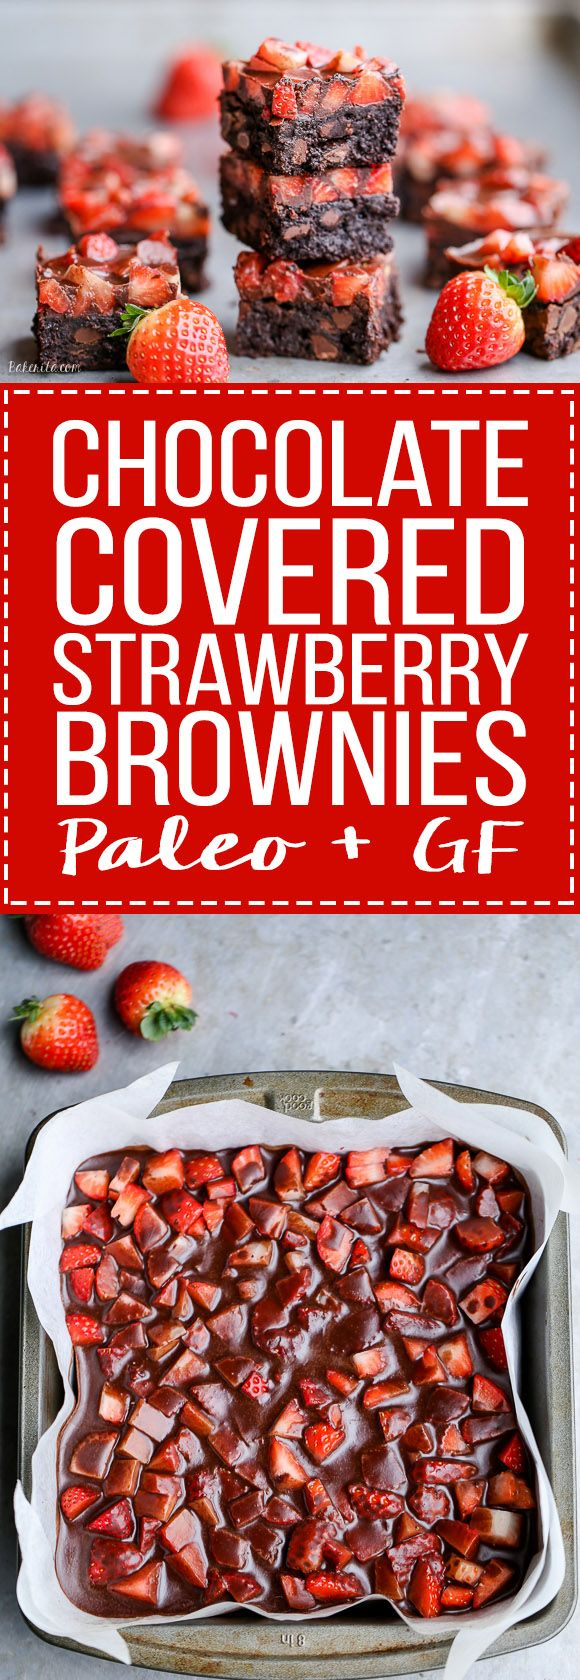 Chocolate Covered Strawberry Brownies (Paleo)